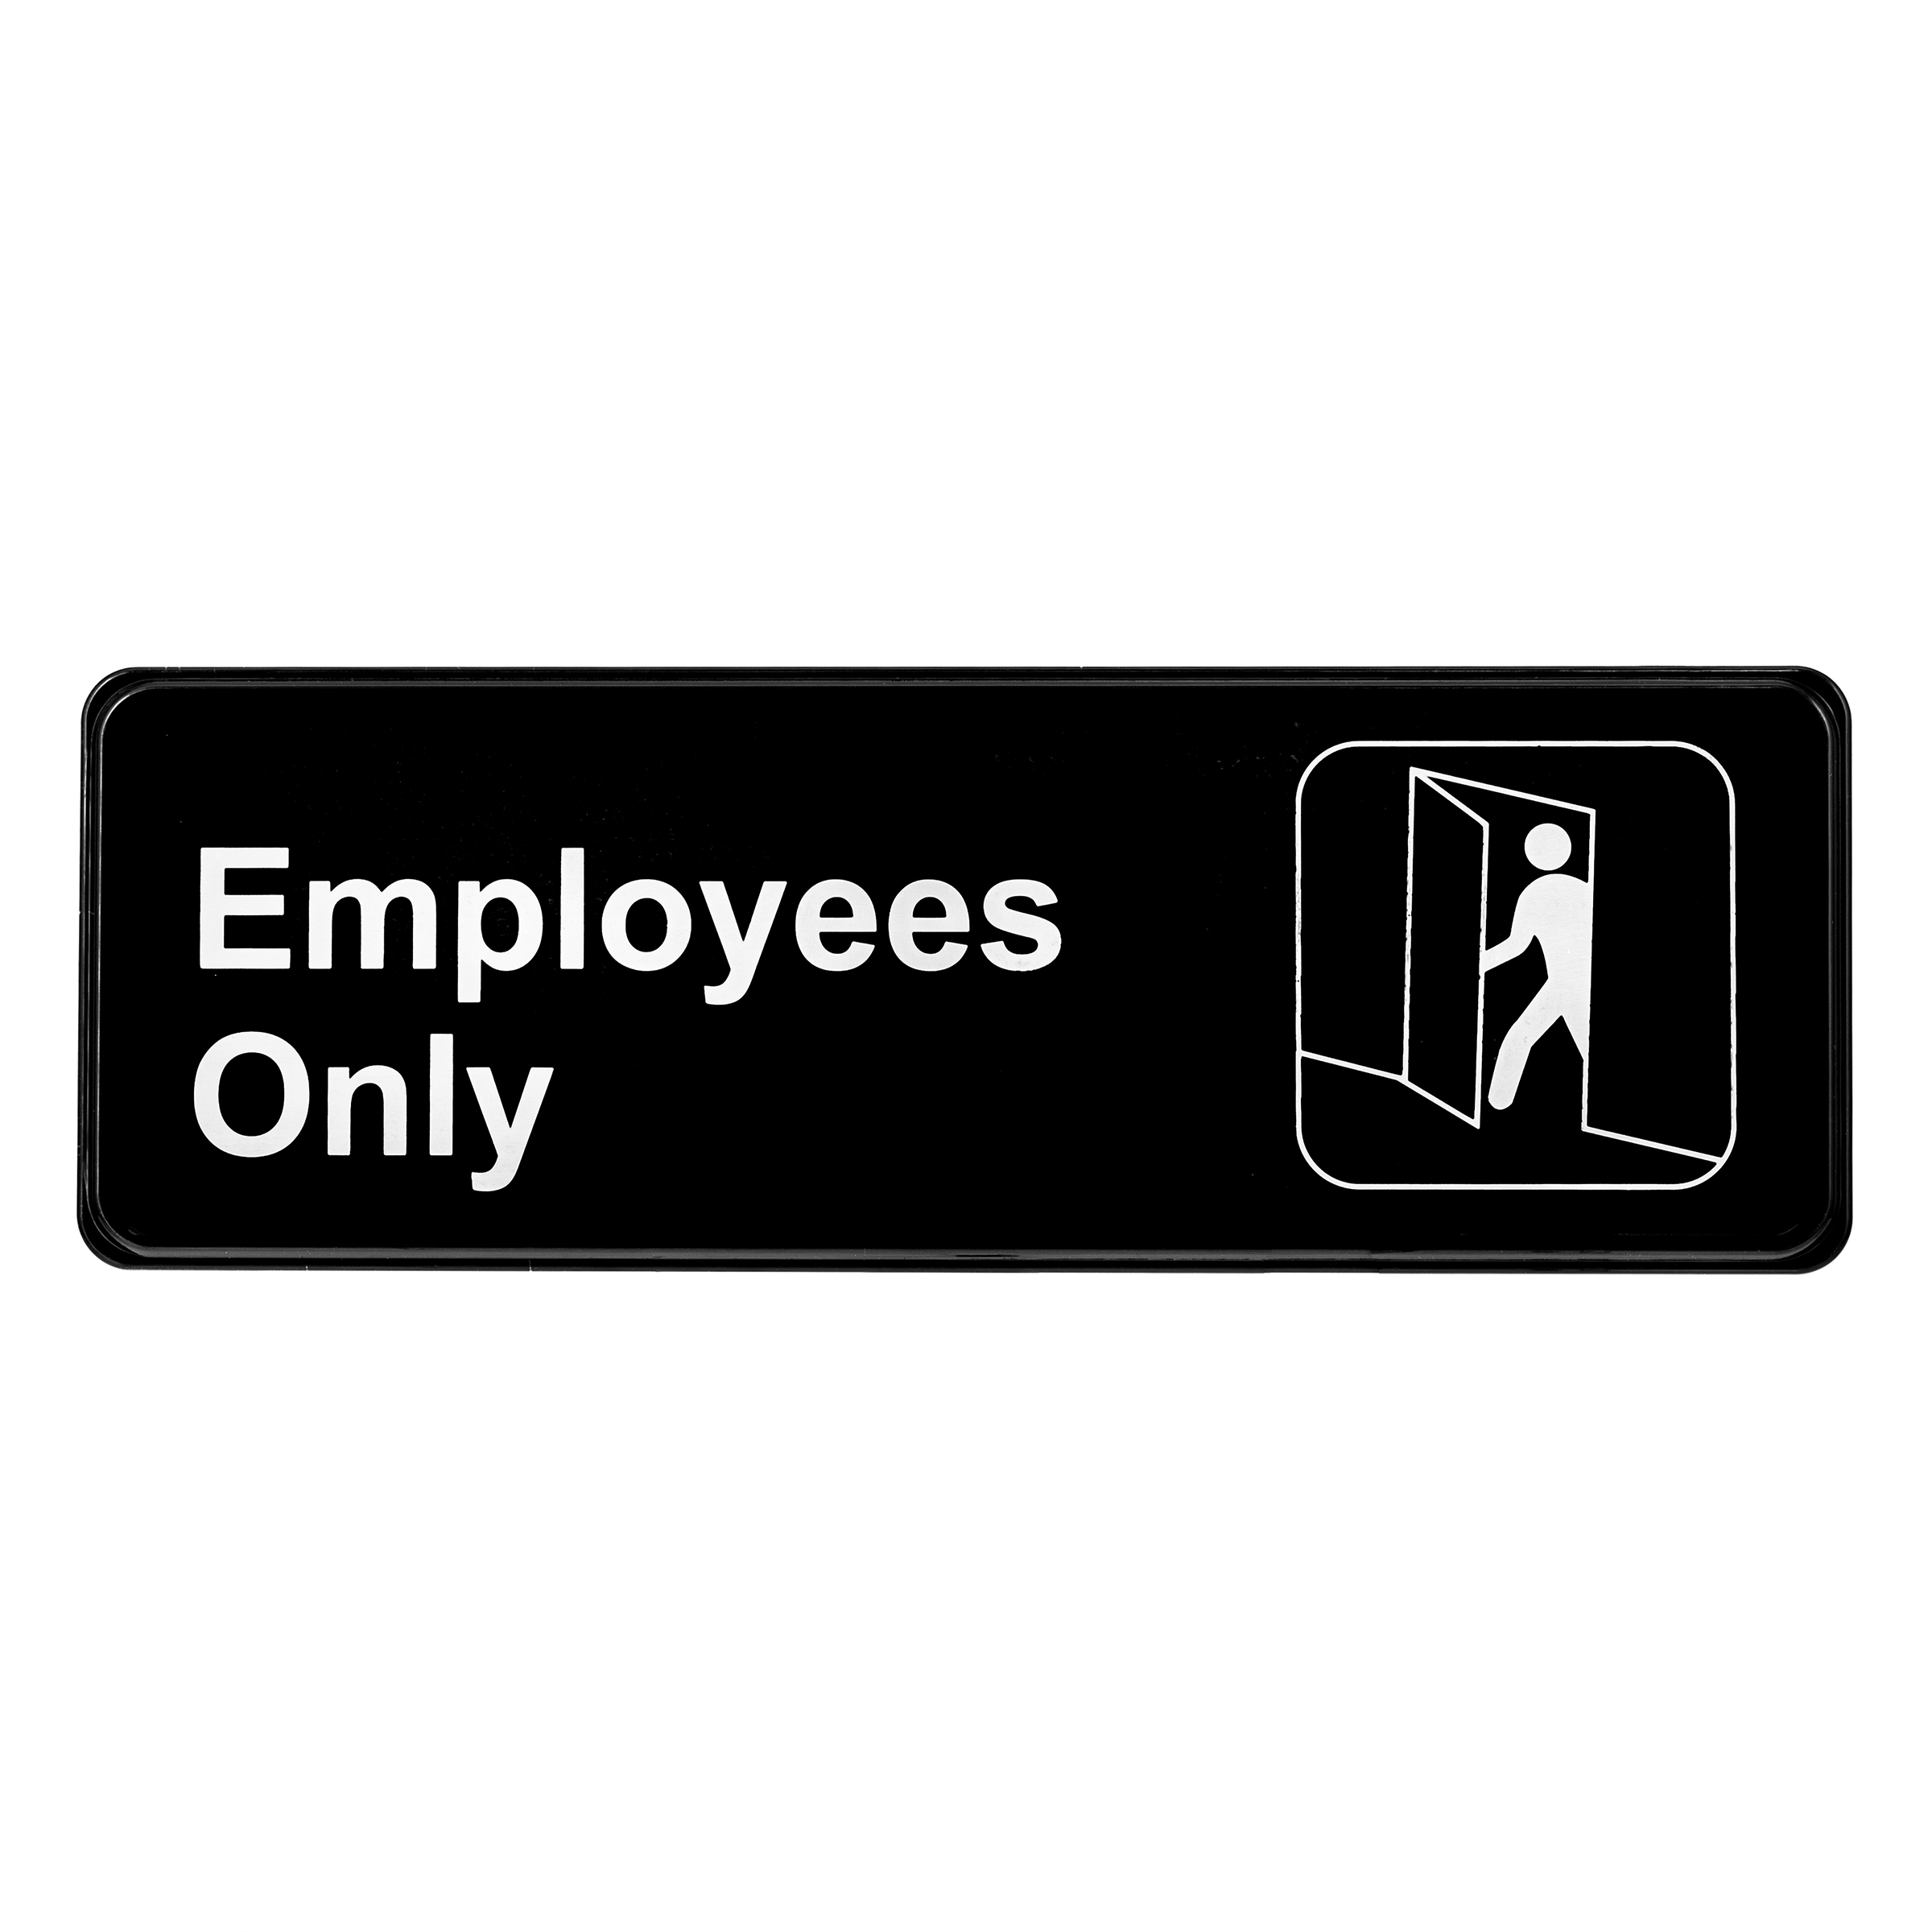 ALPINE INDUSTRIES EMPLOYEES ONLY SIGN, 3×9